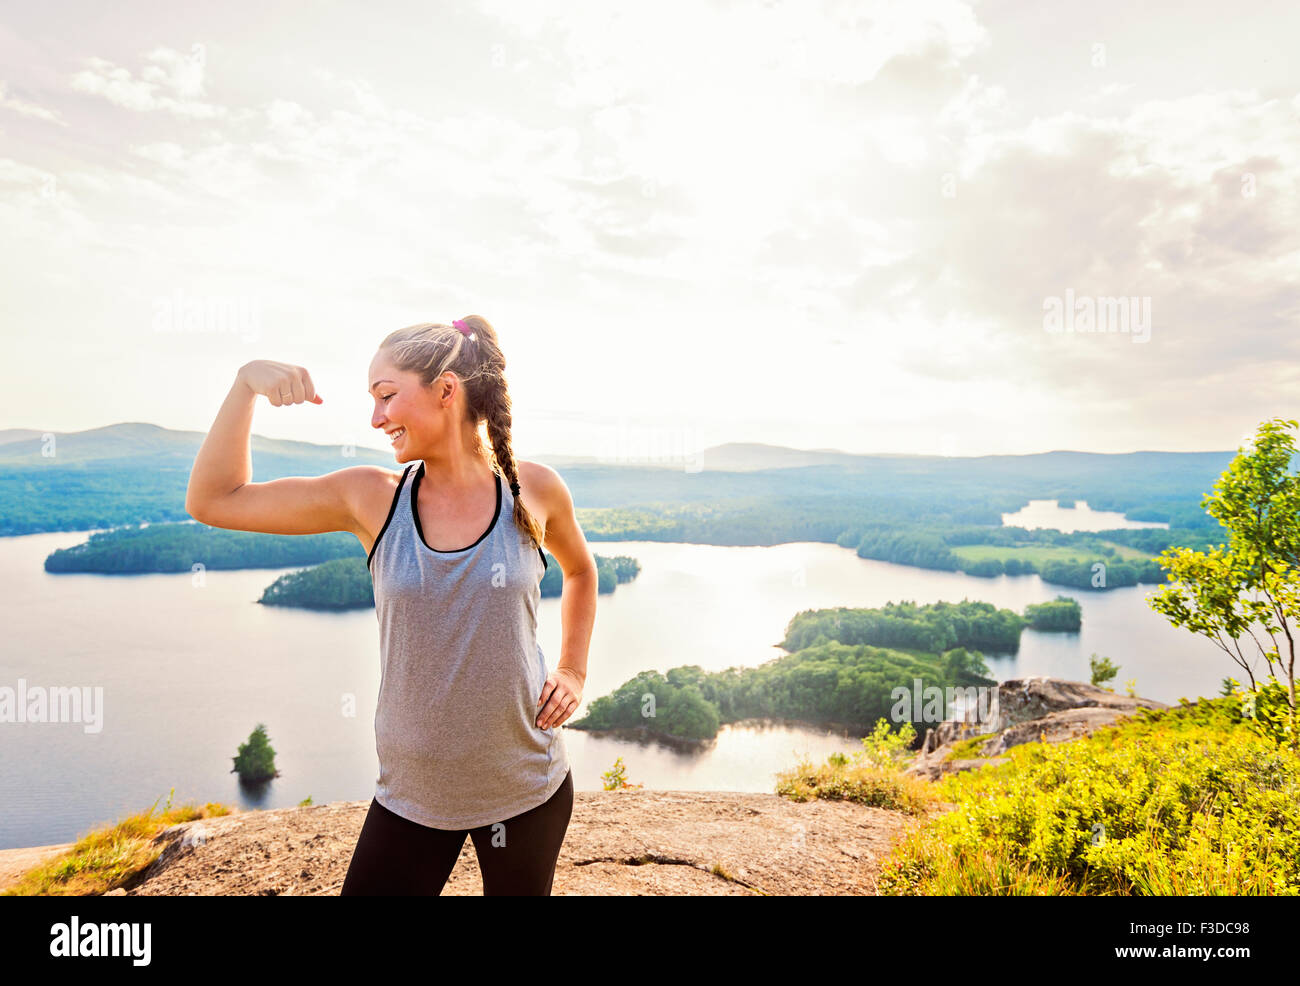 Young woman flexing muscles - Stock Image